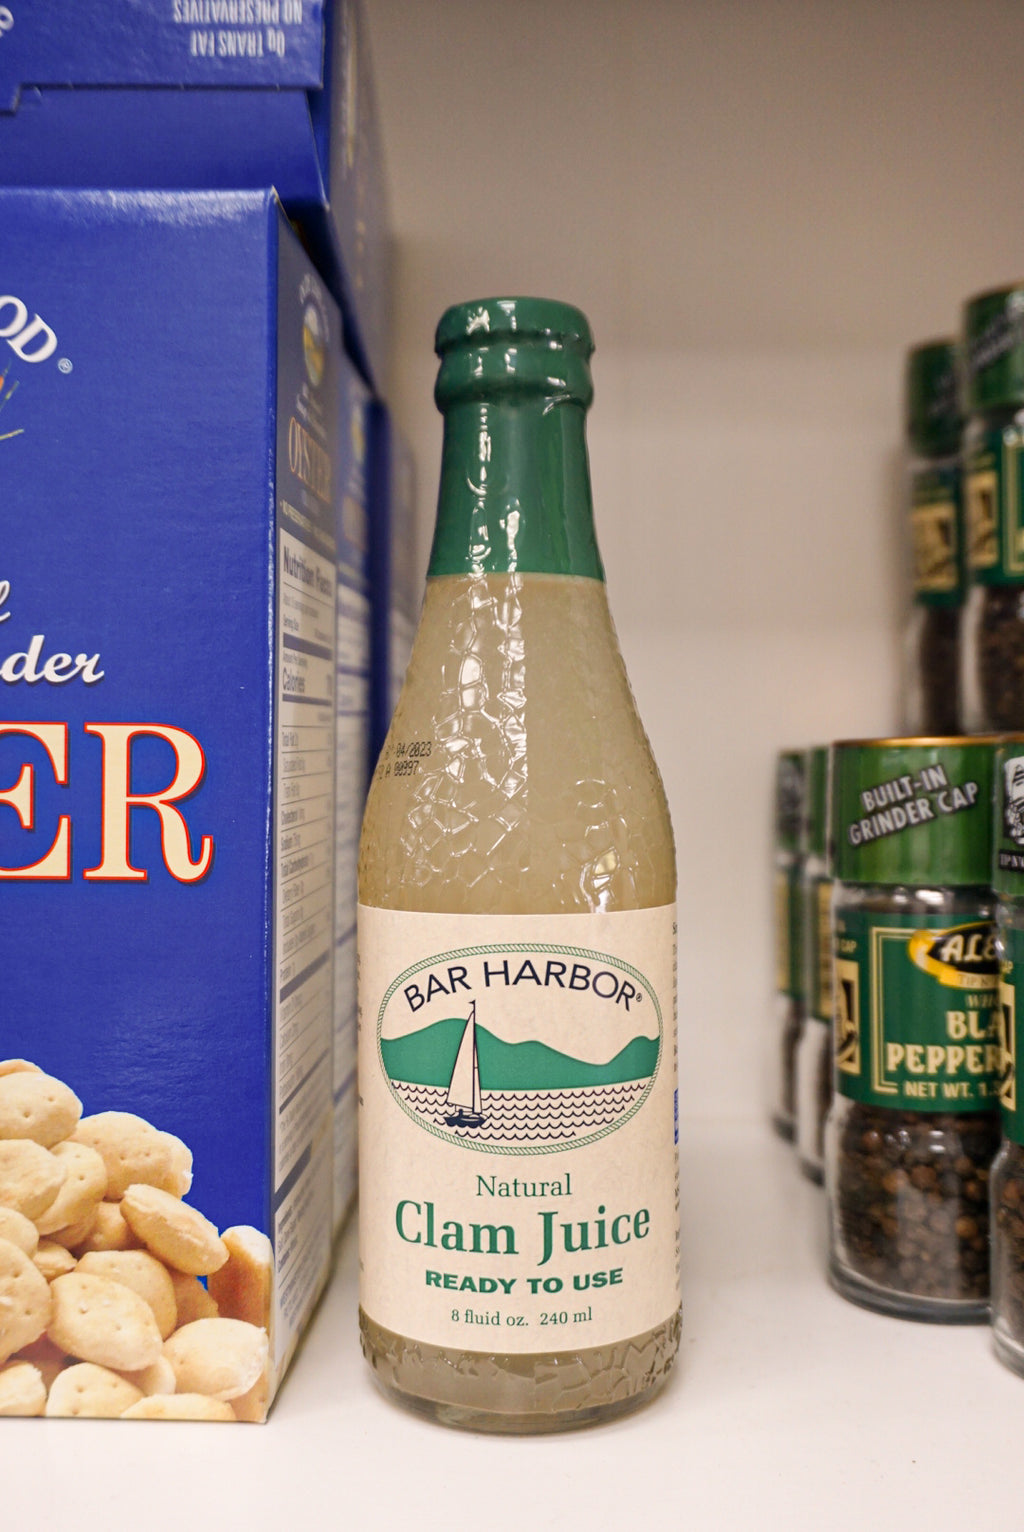 Bar Harbor Clam Juice 8 oz. - Darien